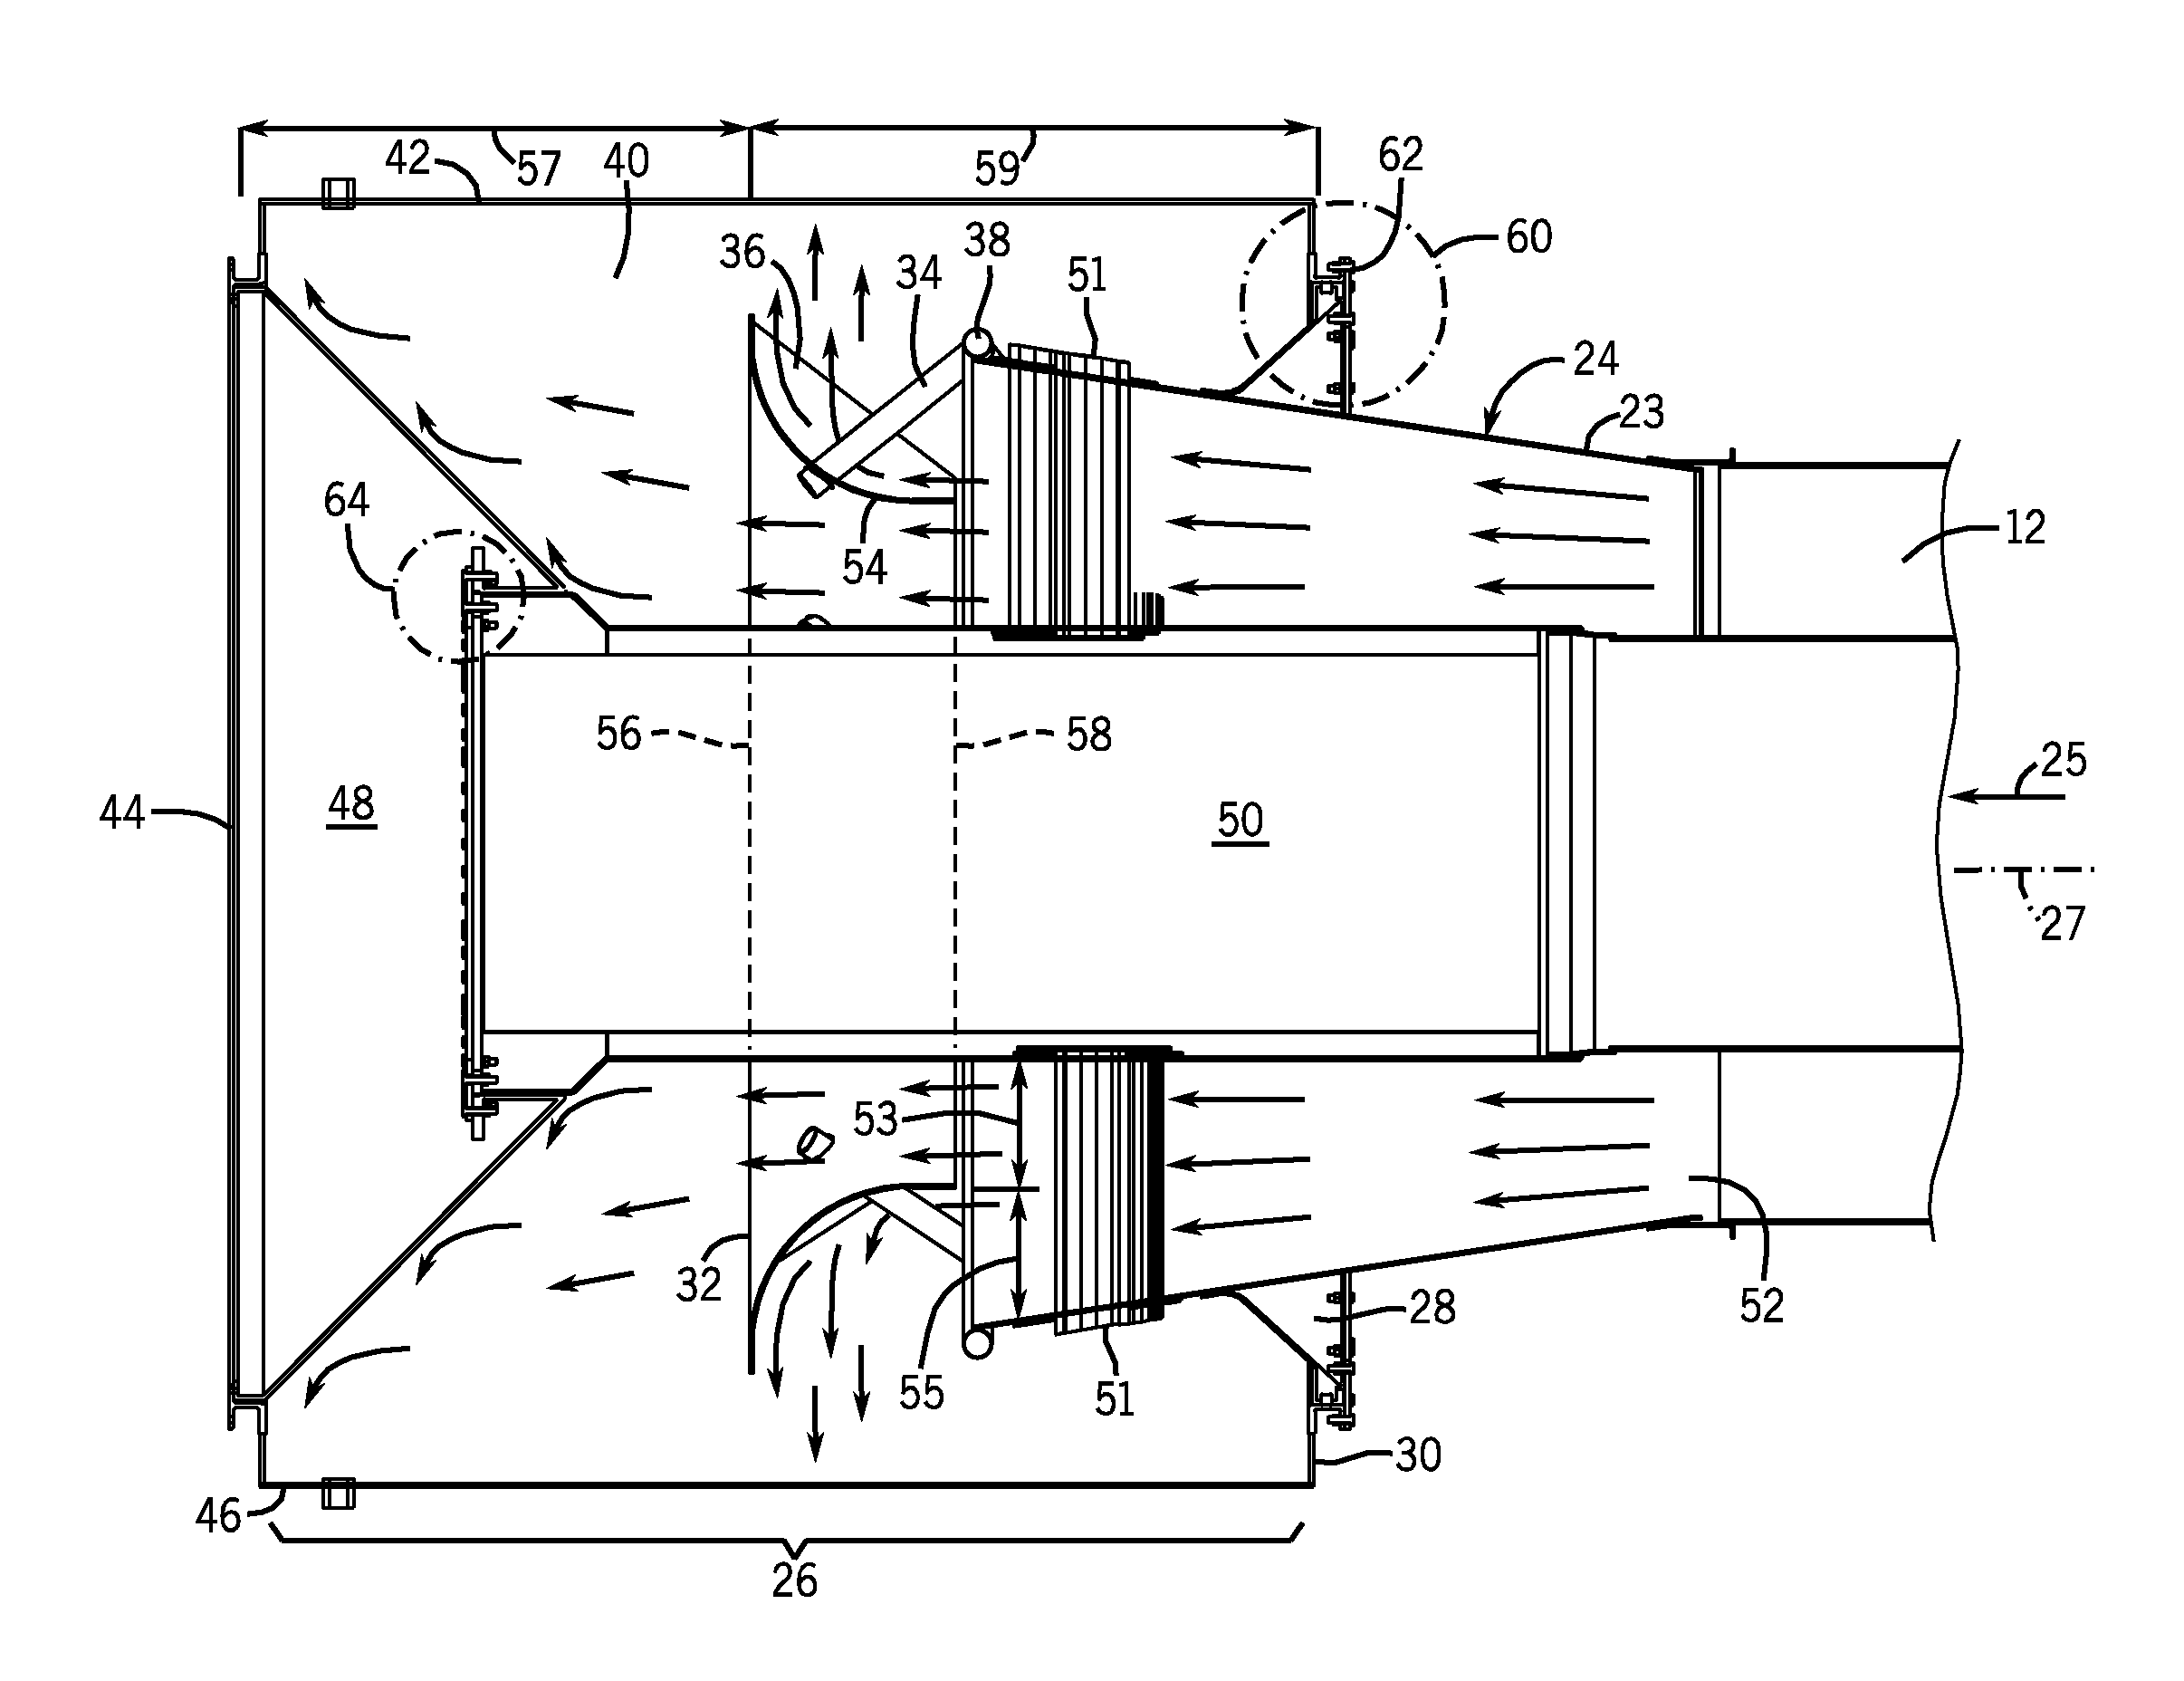 Brevet Us8511984 Gas Turbine Engine Exhaust Diffuser And Collector Jet Diagram Of An Axialflow Patent Drawing